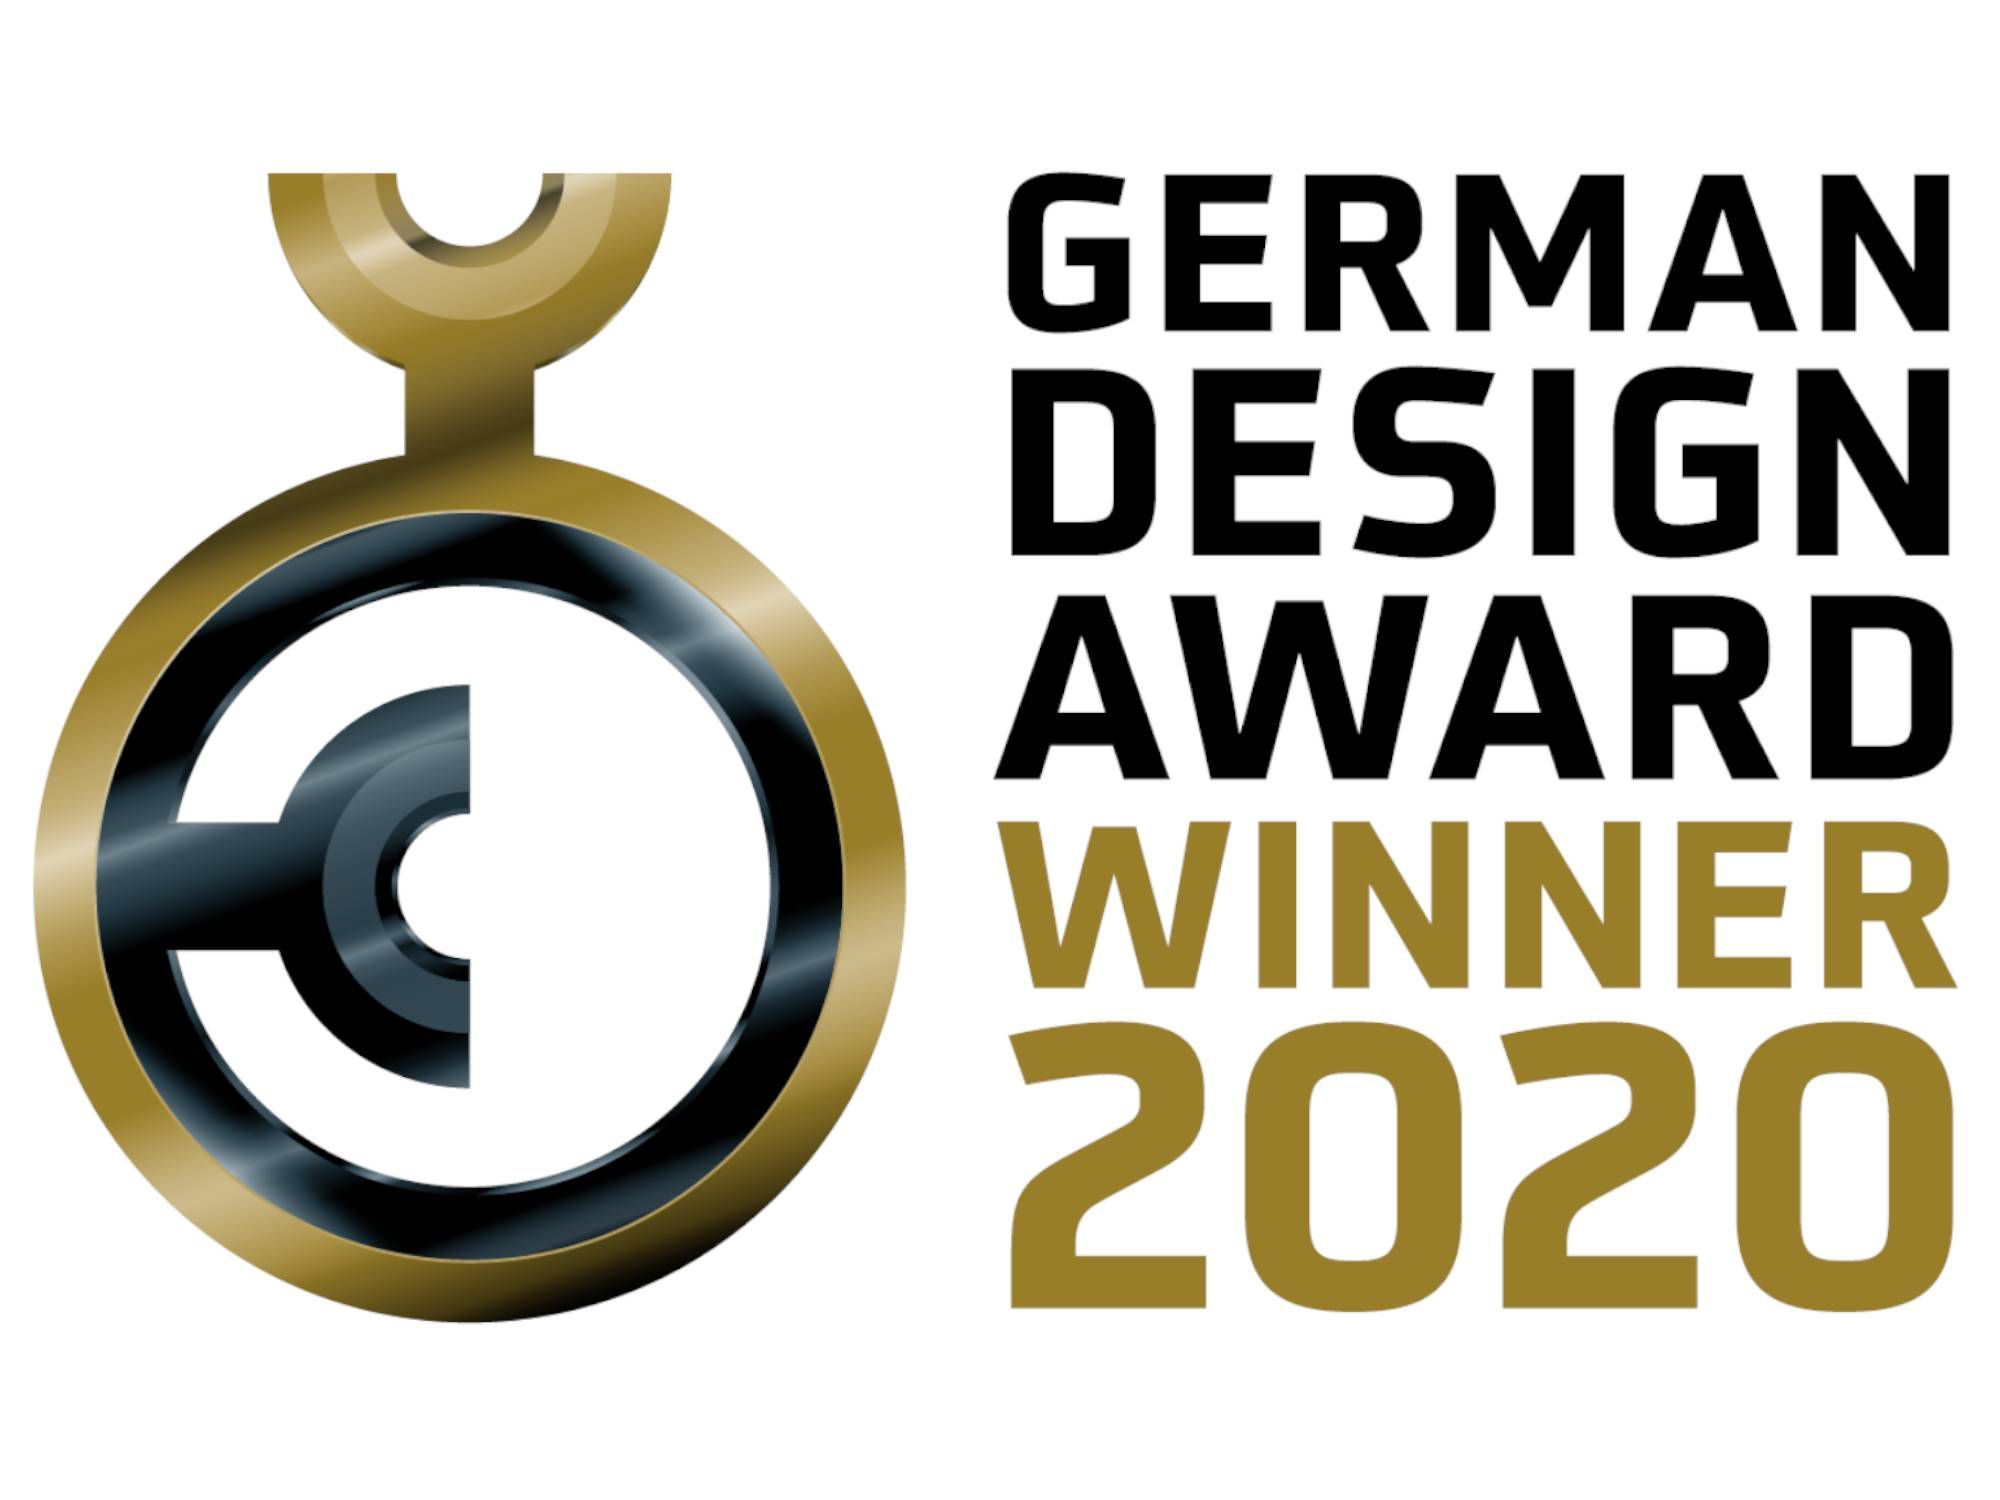 German Design Award Winner 2020